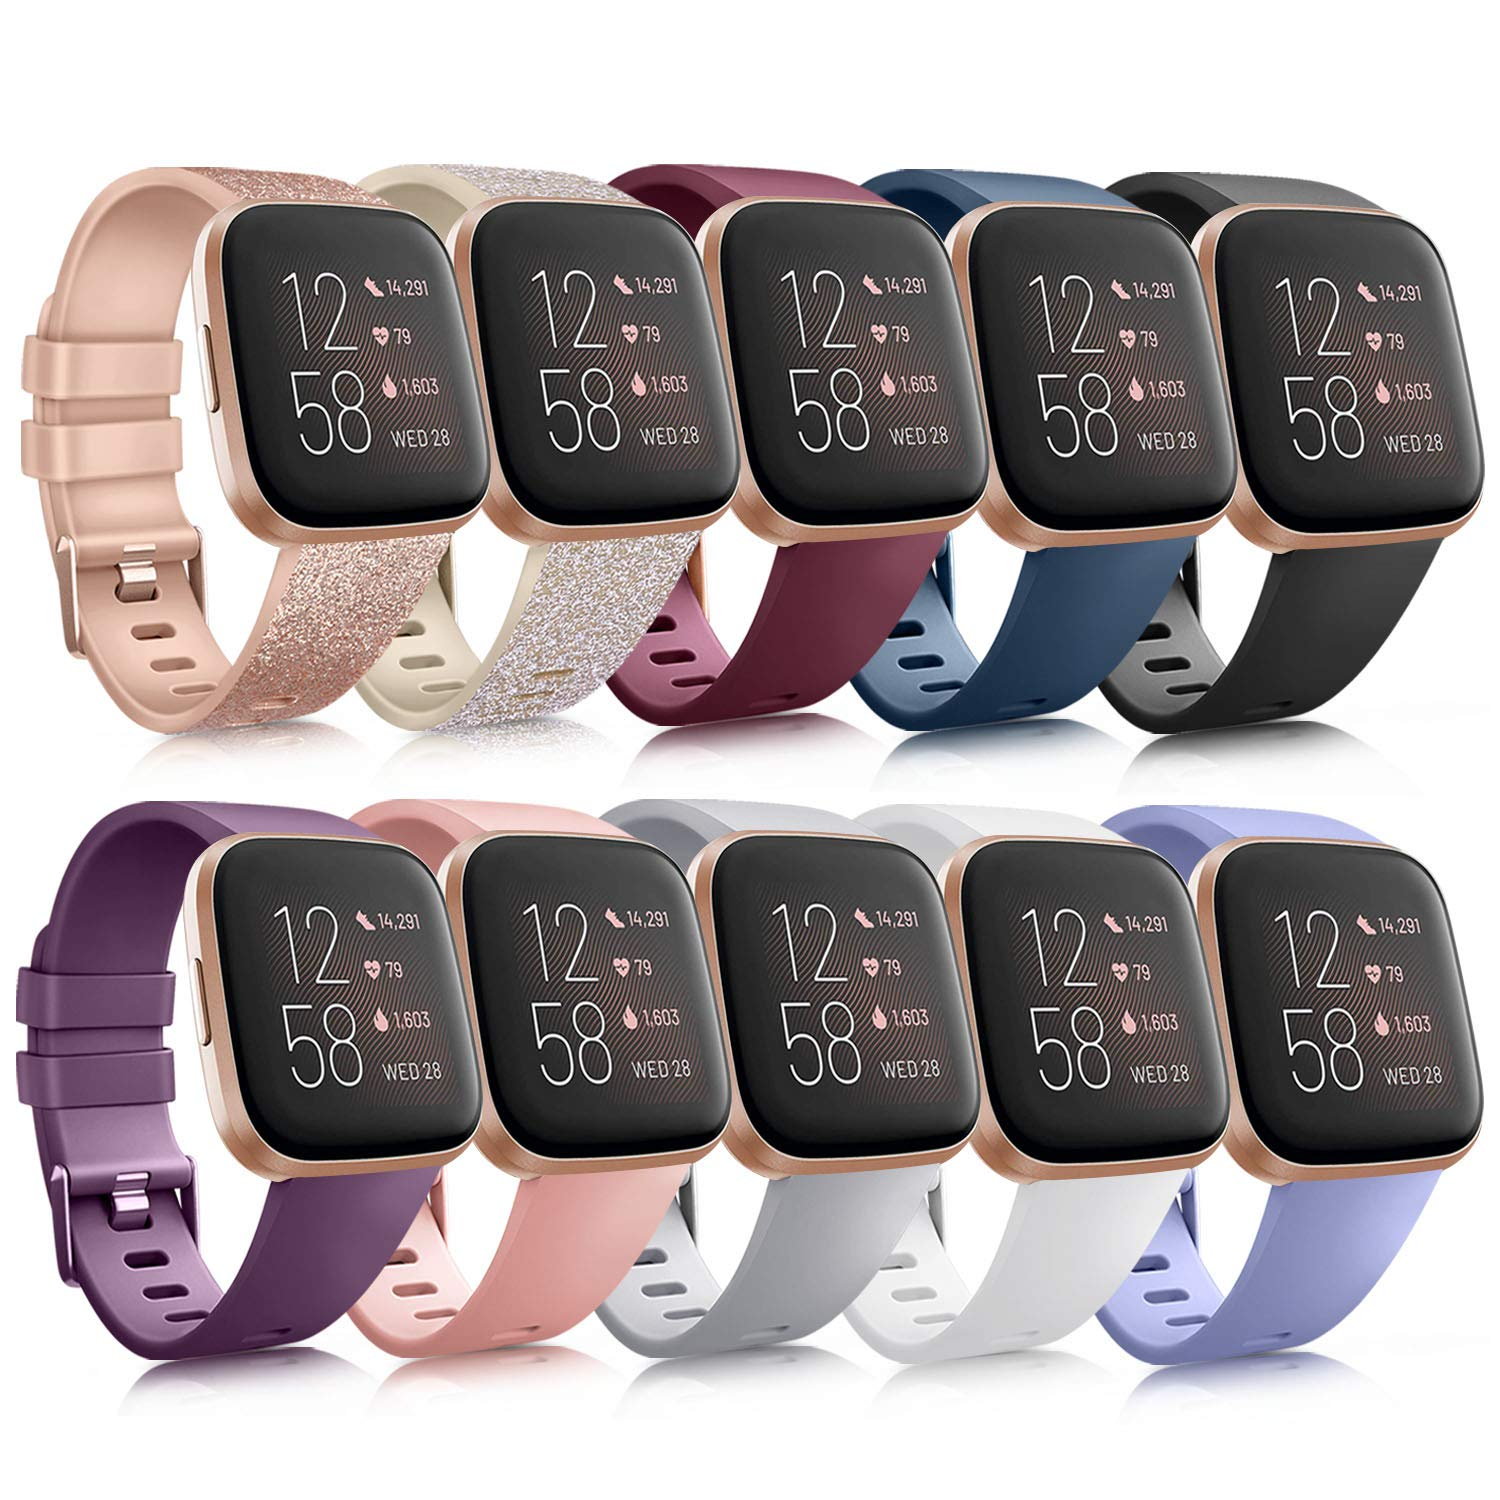 10 Pack Silicone Bands Compatible with Fitbit Versa 2 / Fitbit Versa/Versa Lite/Versa SE, Classic Soft Replacement Sport Wristbands Accessories for Women Men (Small, 10 Pack B)